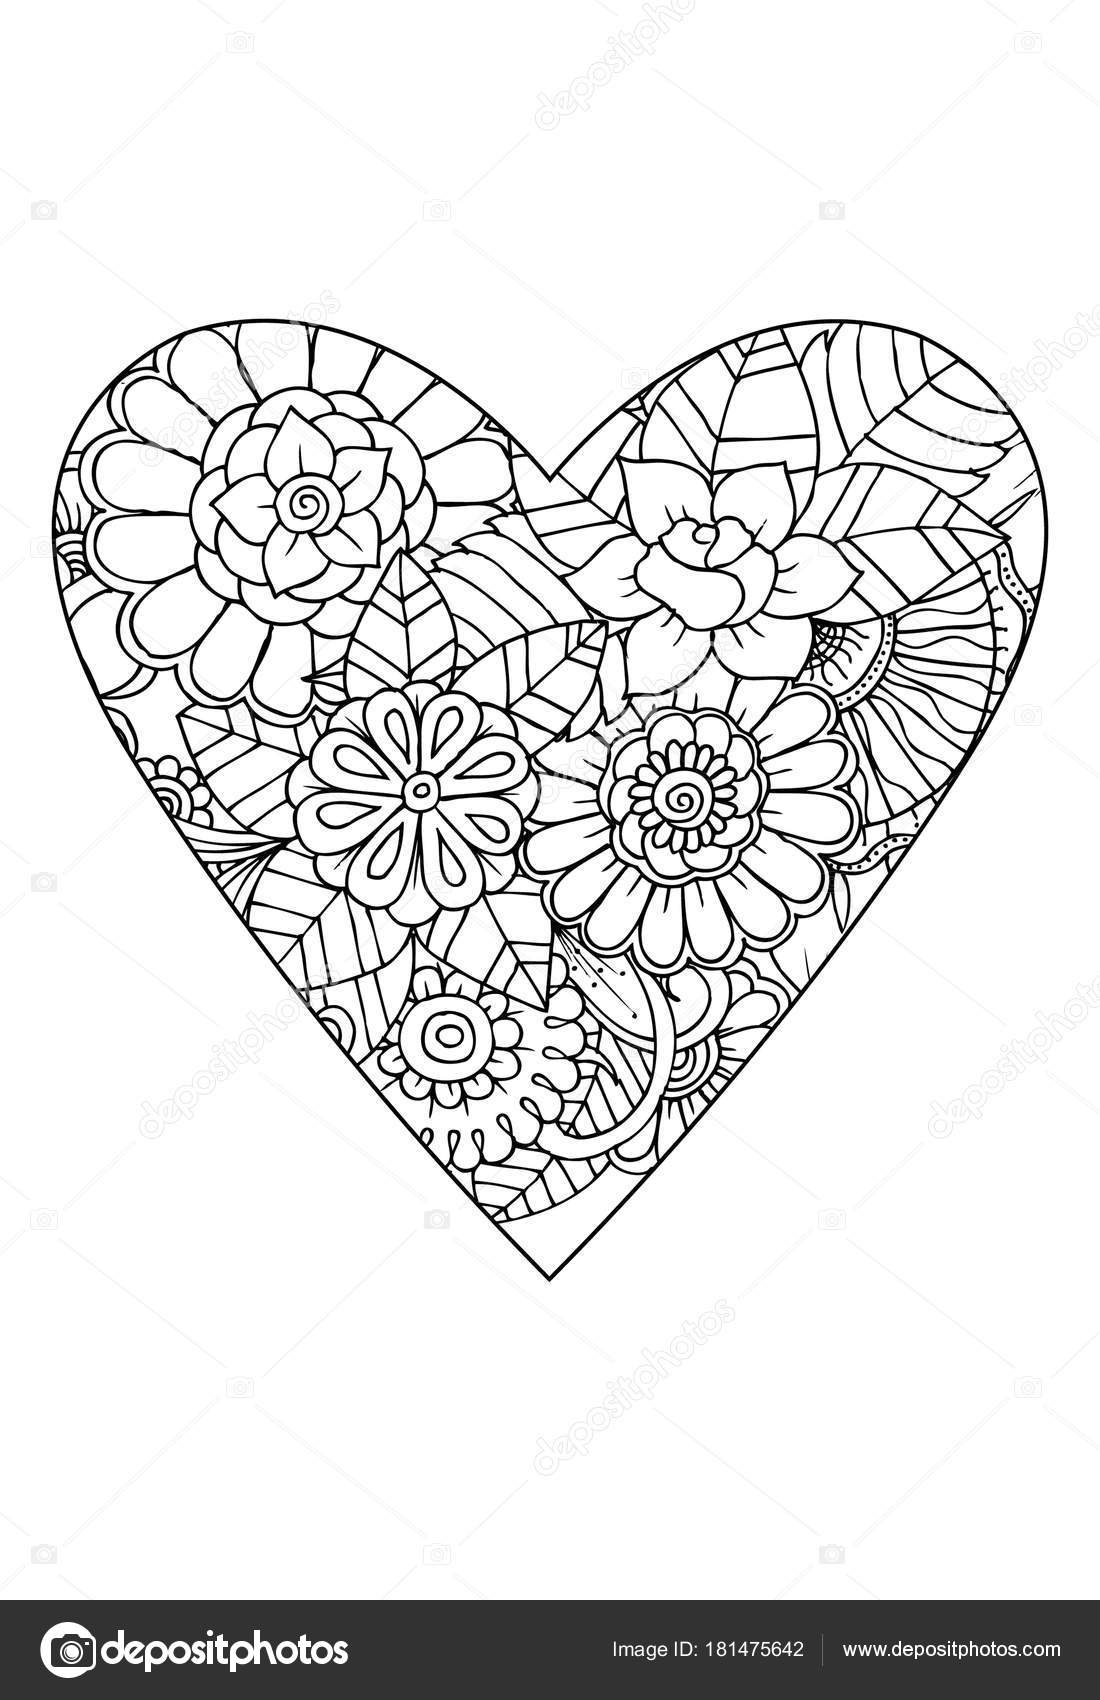 Coloring Book Style Valentine Day Theme Heart Flower Pattern ...